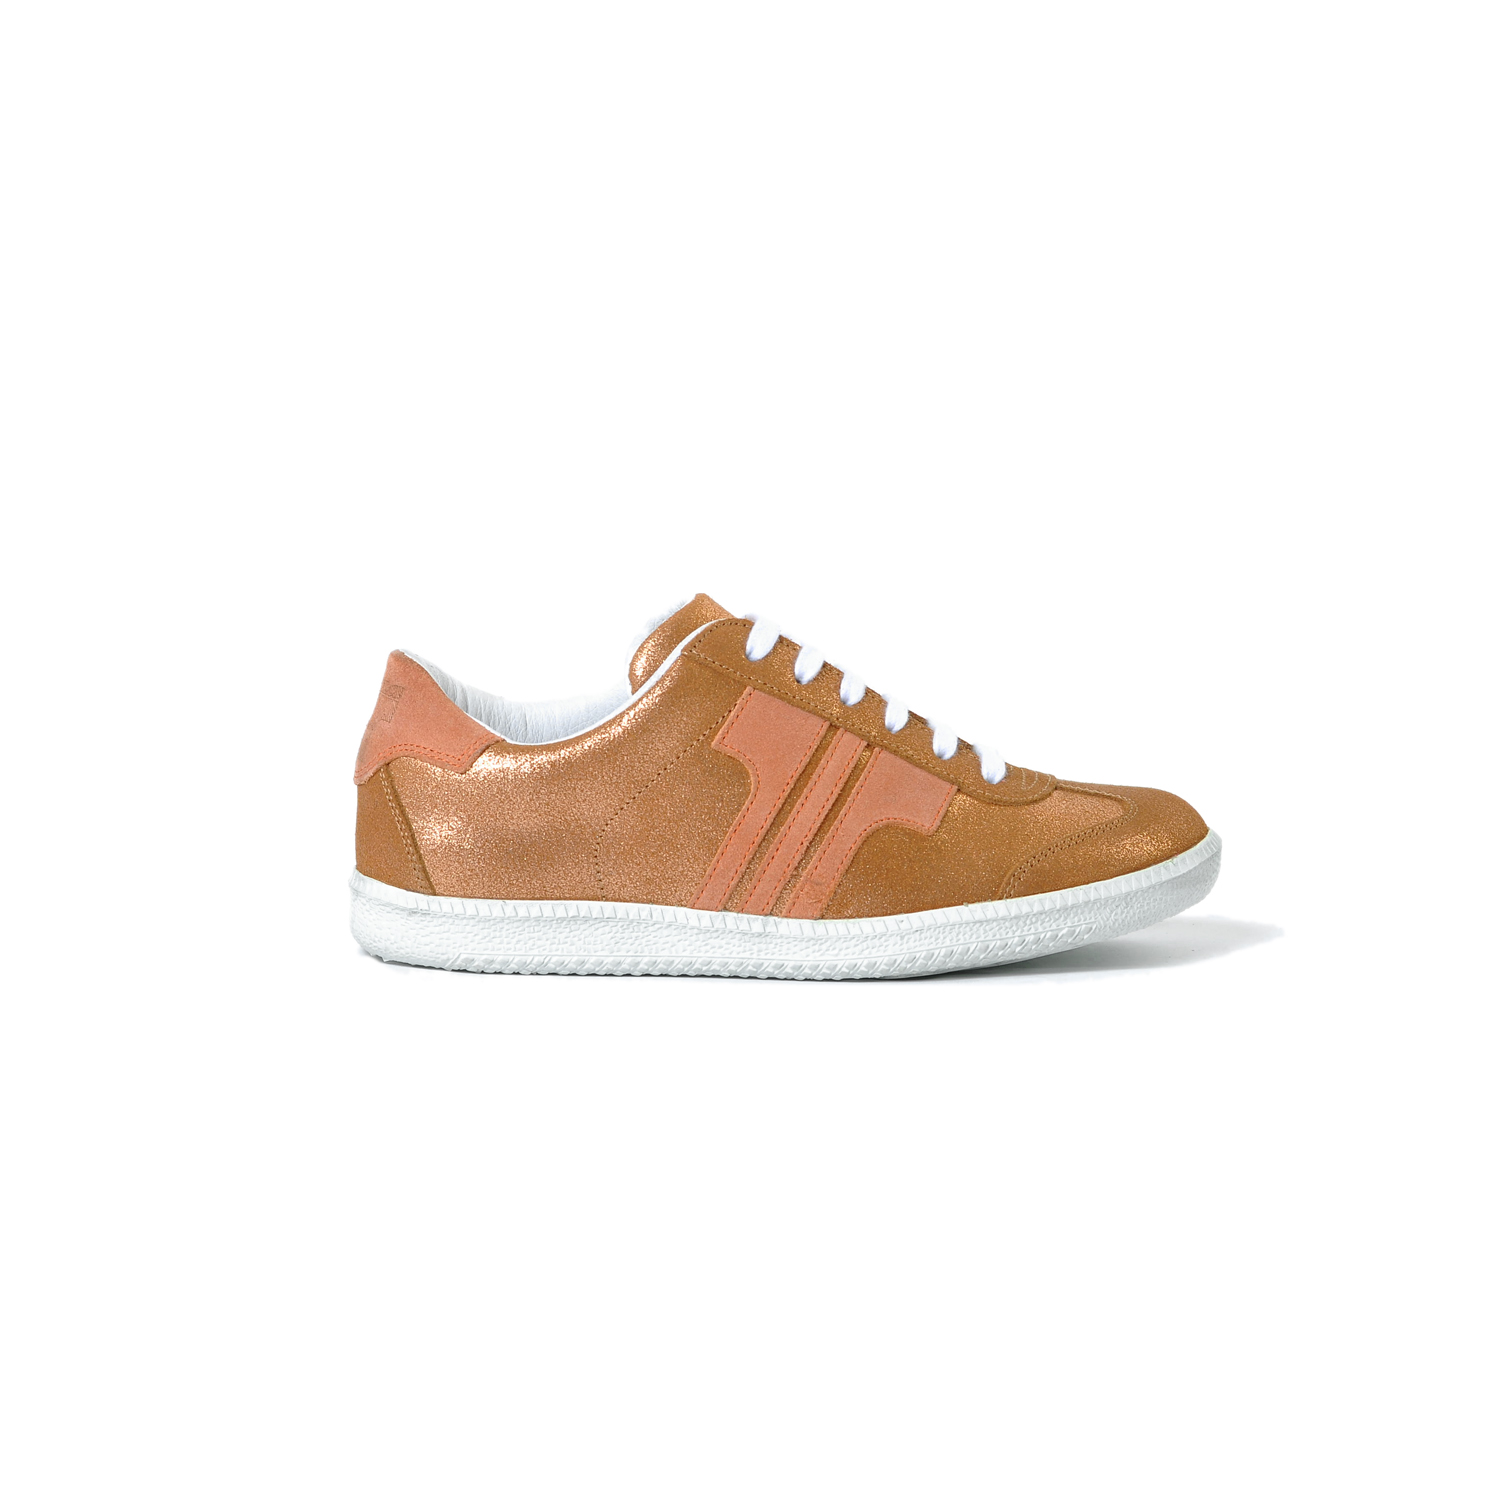 Tisza shoes - Comfort - Rose gold-nude